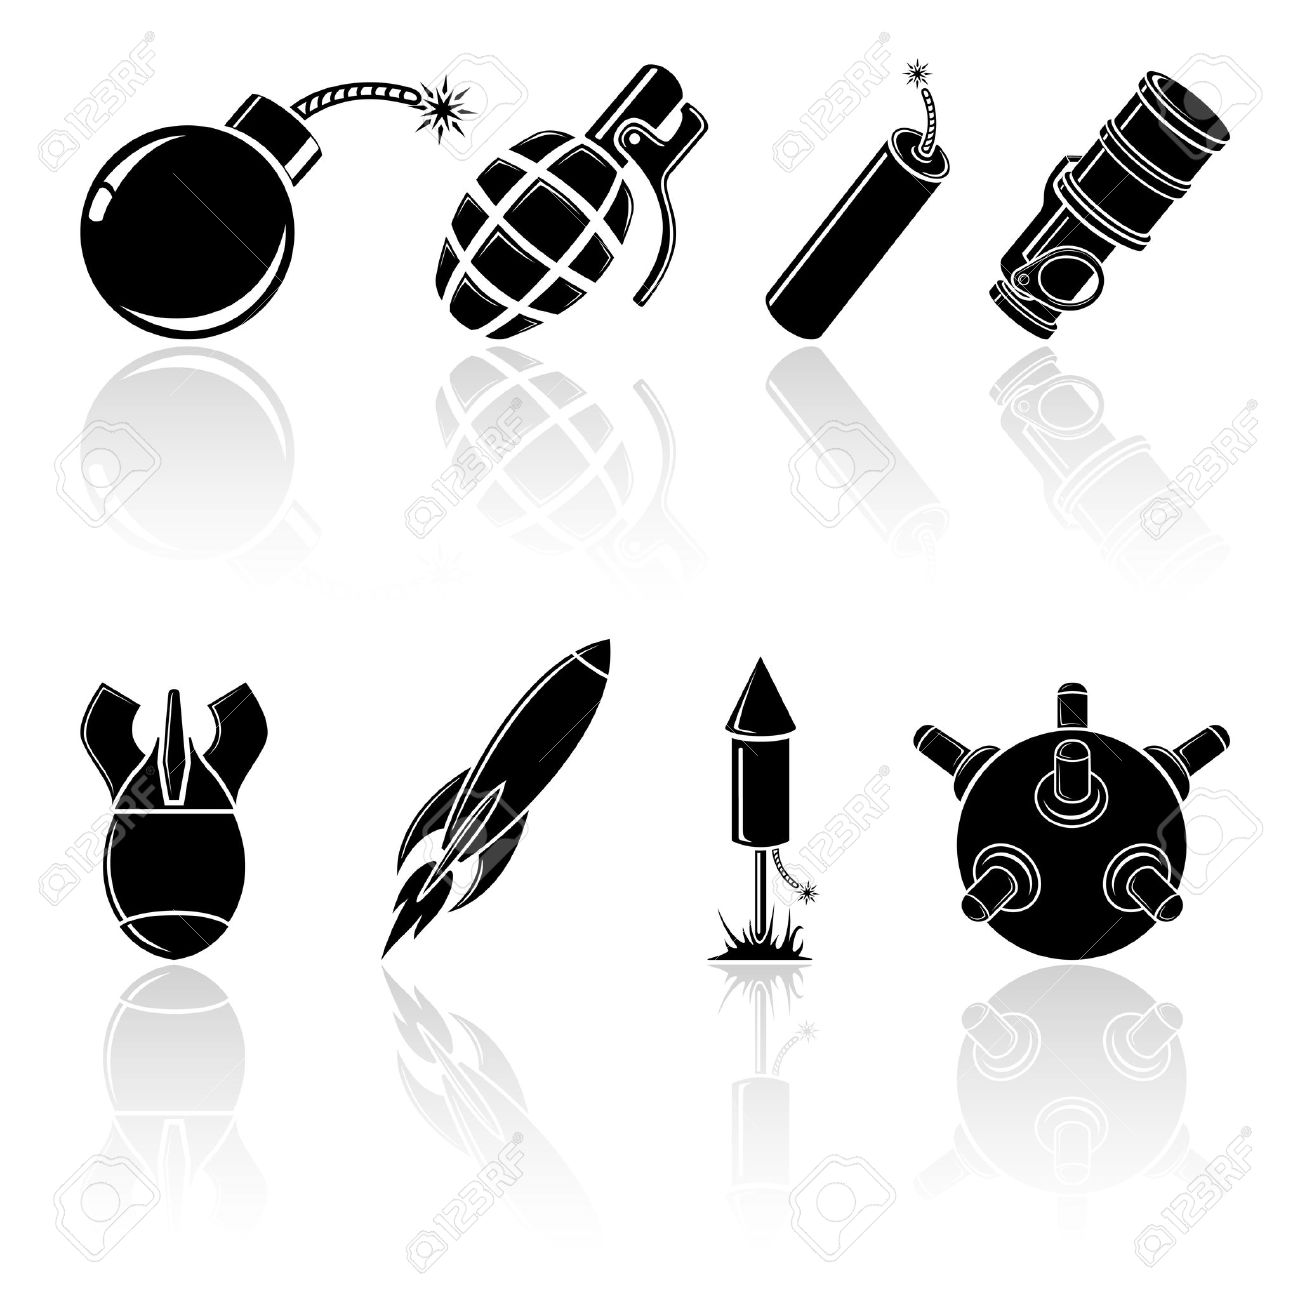 Set of black explosive icons, illustration. Stock Vector - 18990654